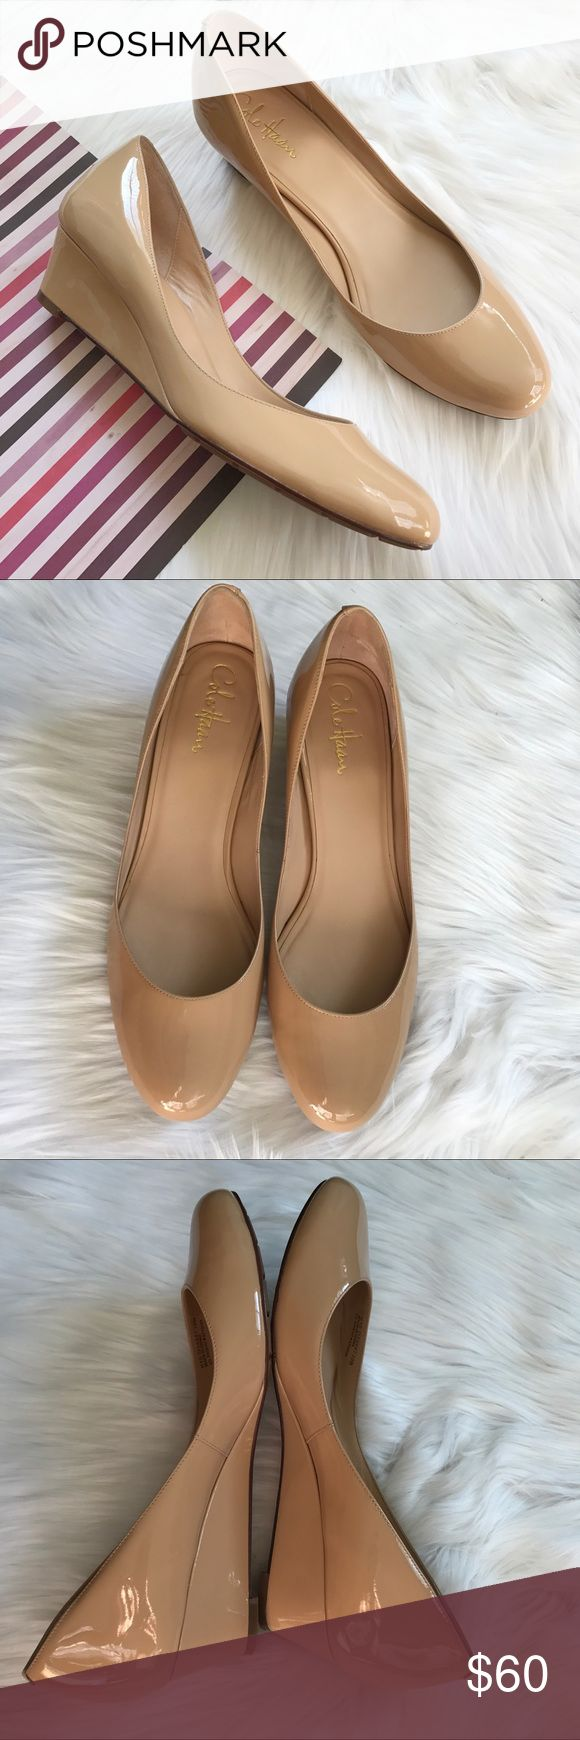 "Cole Haan Air Talia Patent Wedge Pre-loved, with box, Women's sleek, slip on wedge, designed with Nike Air, 1.75"" wrapped wedge, patent leather upper, leather lining, rubber and leather sole. Beige Color. Please feel free to ask questions. No trades. Cole Haan Shoes Wedges"